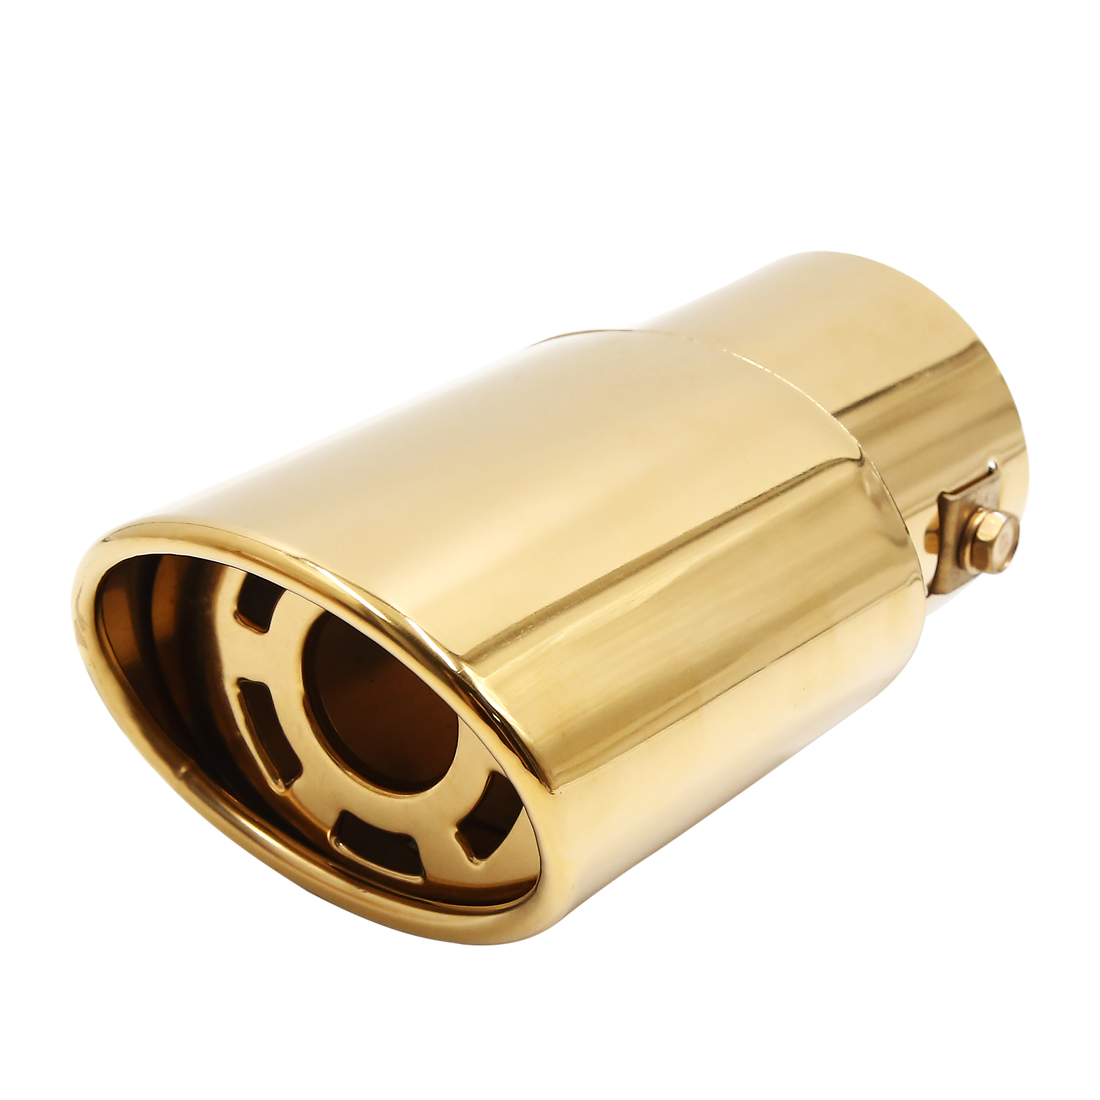 Gold Tone Vehicle Automotive Grade Stainless Steel Exhaust Muffler Tail Pipe